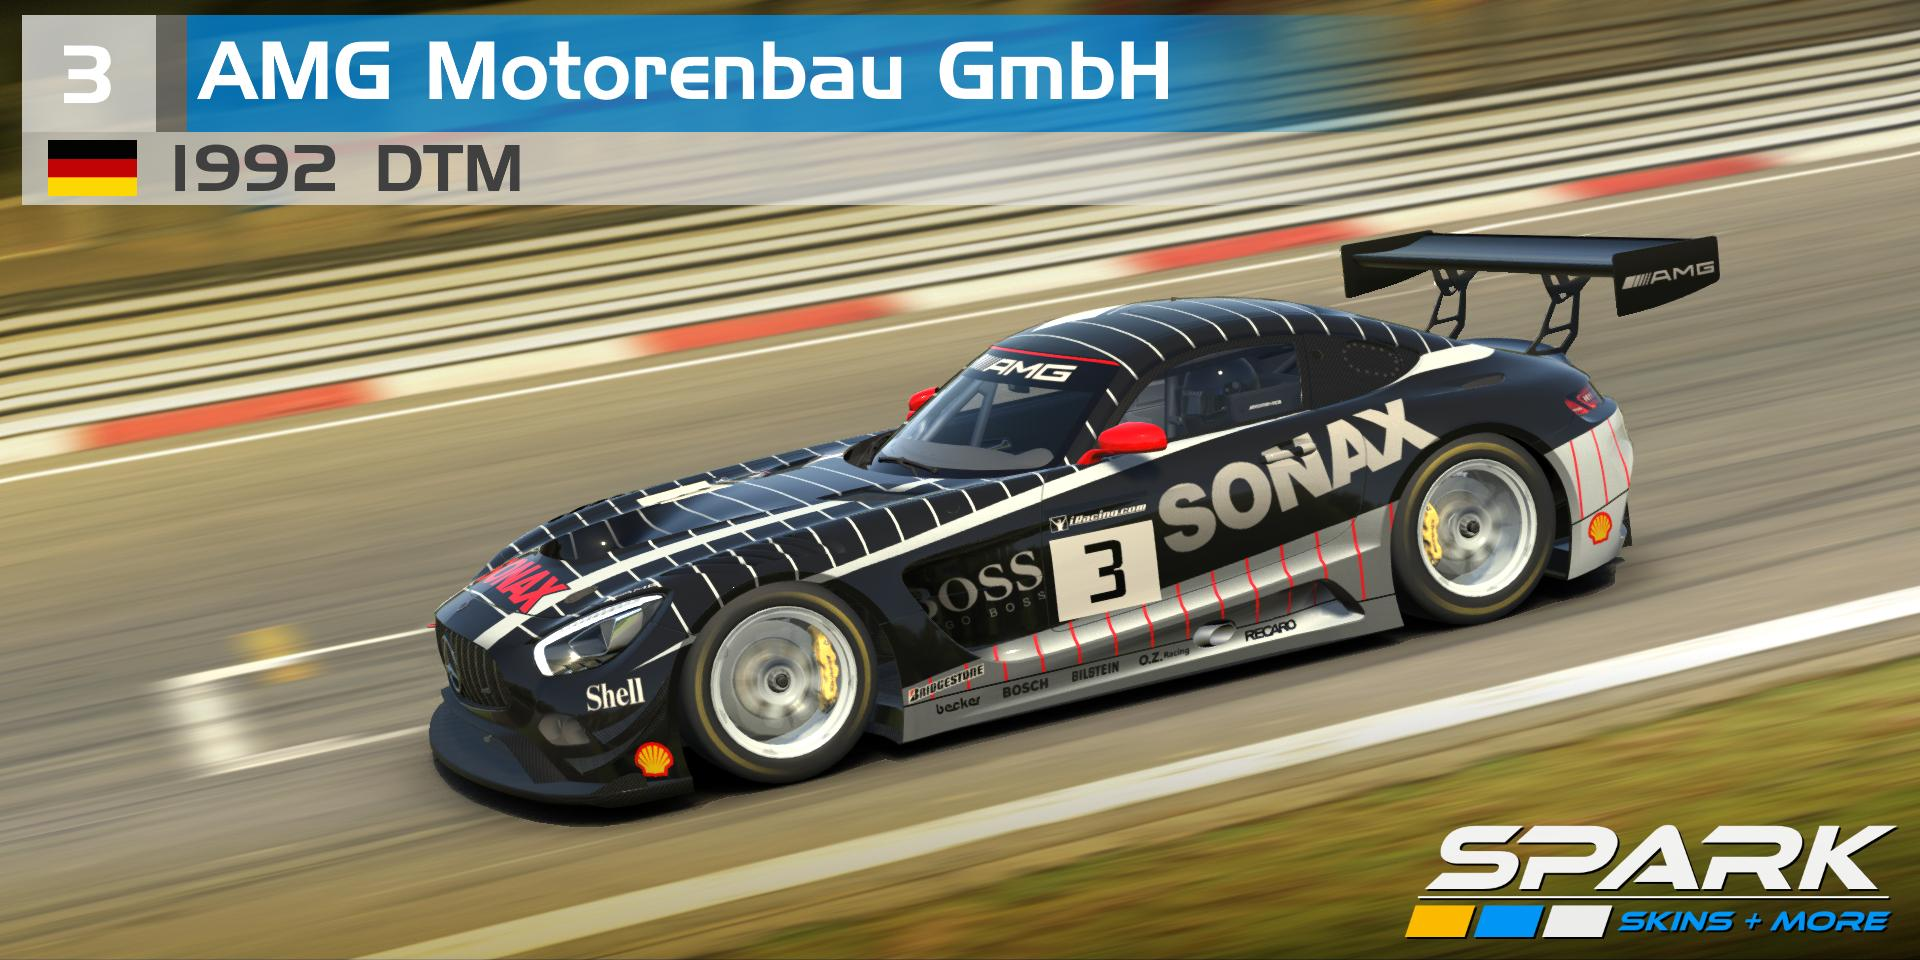 Preview of 1992 - DTM - AMG Motorenbau GmbH #3 by Marcel M Penzkofer